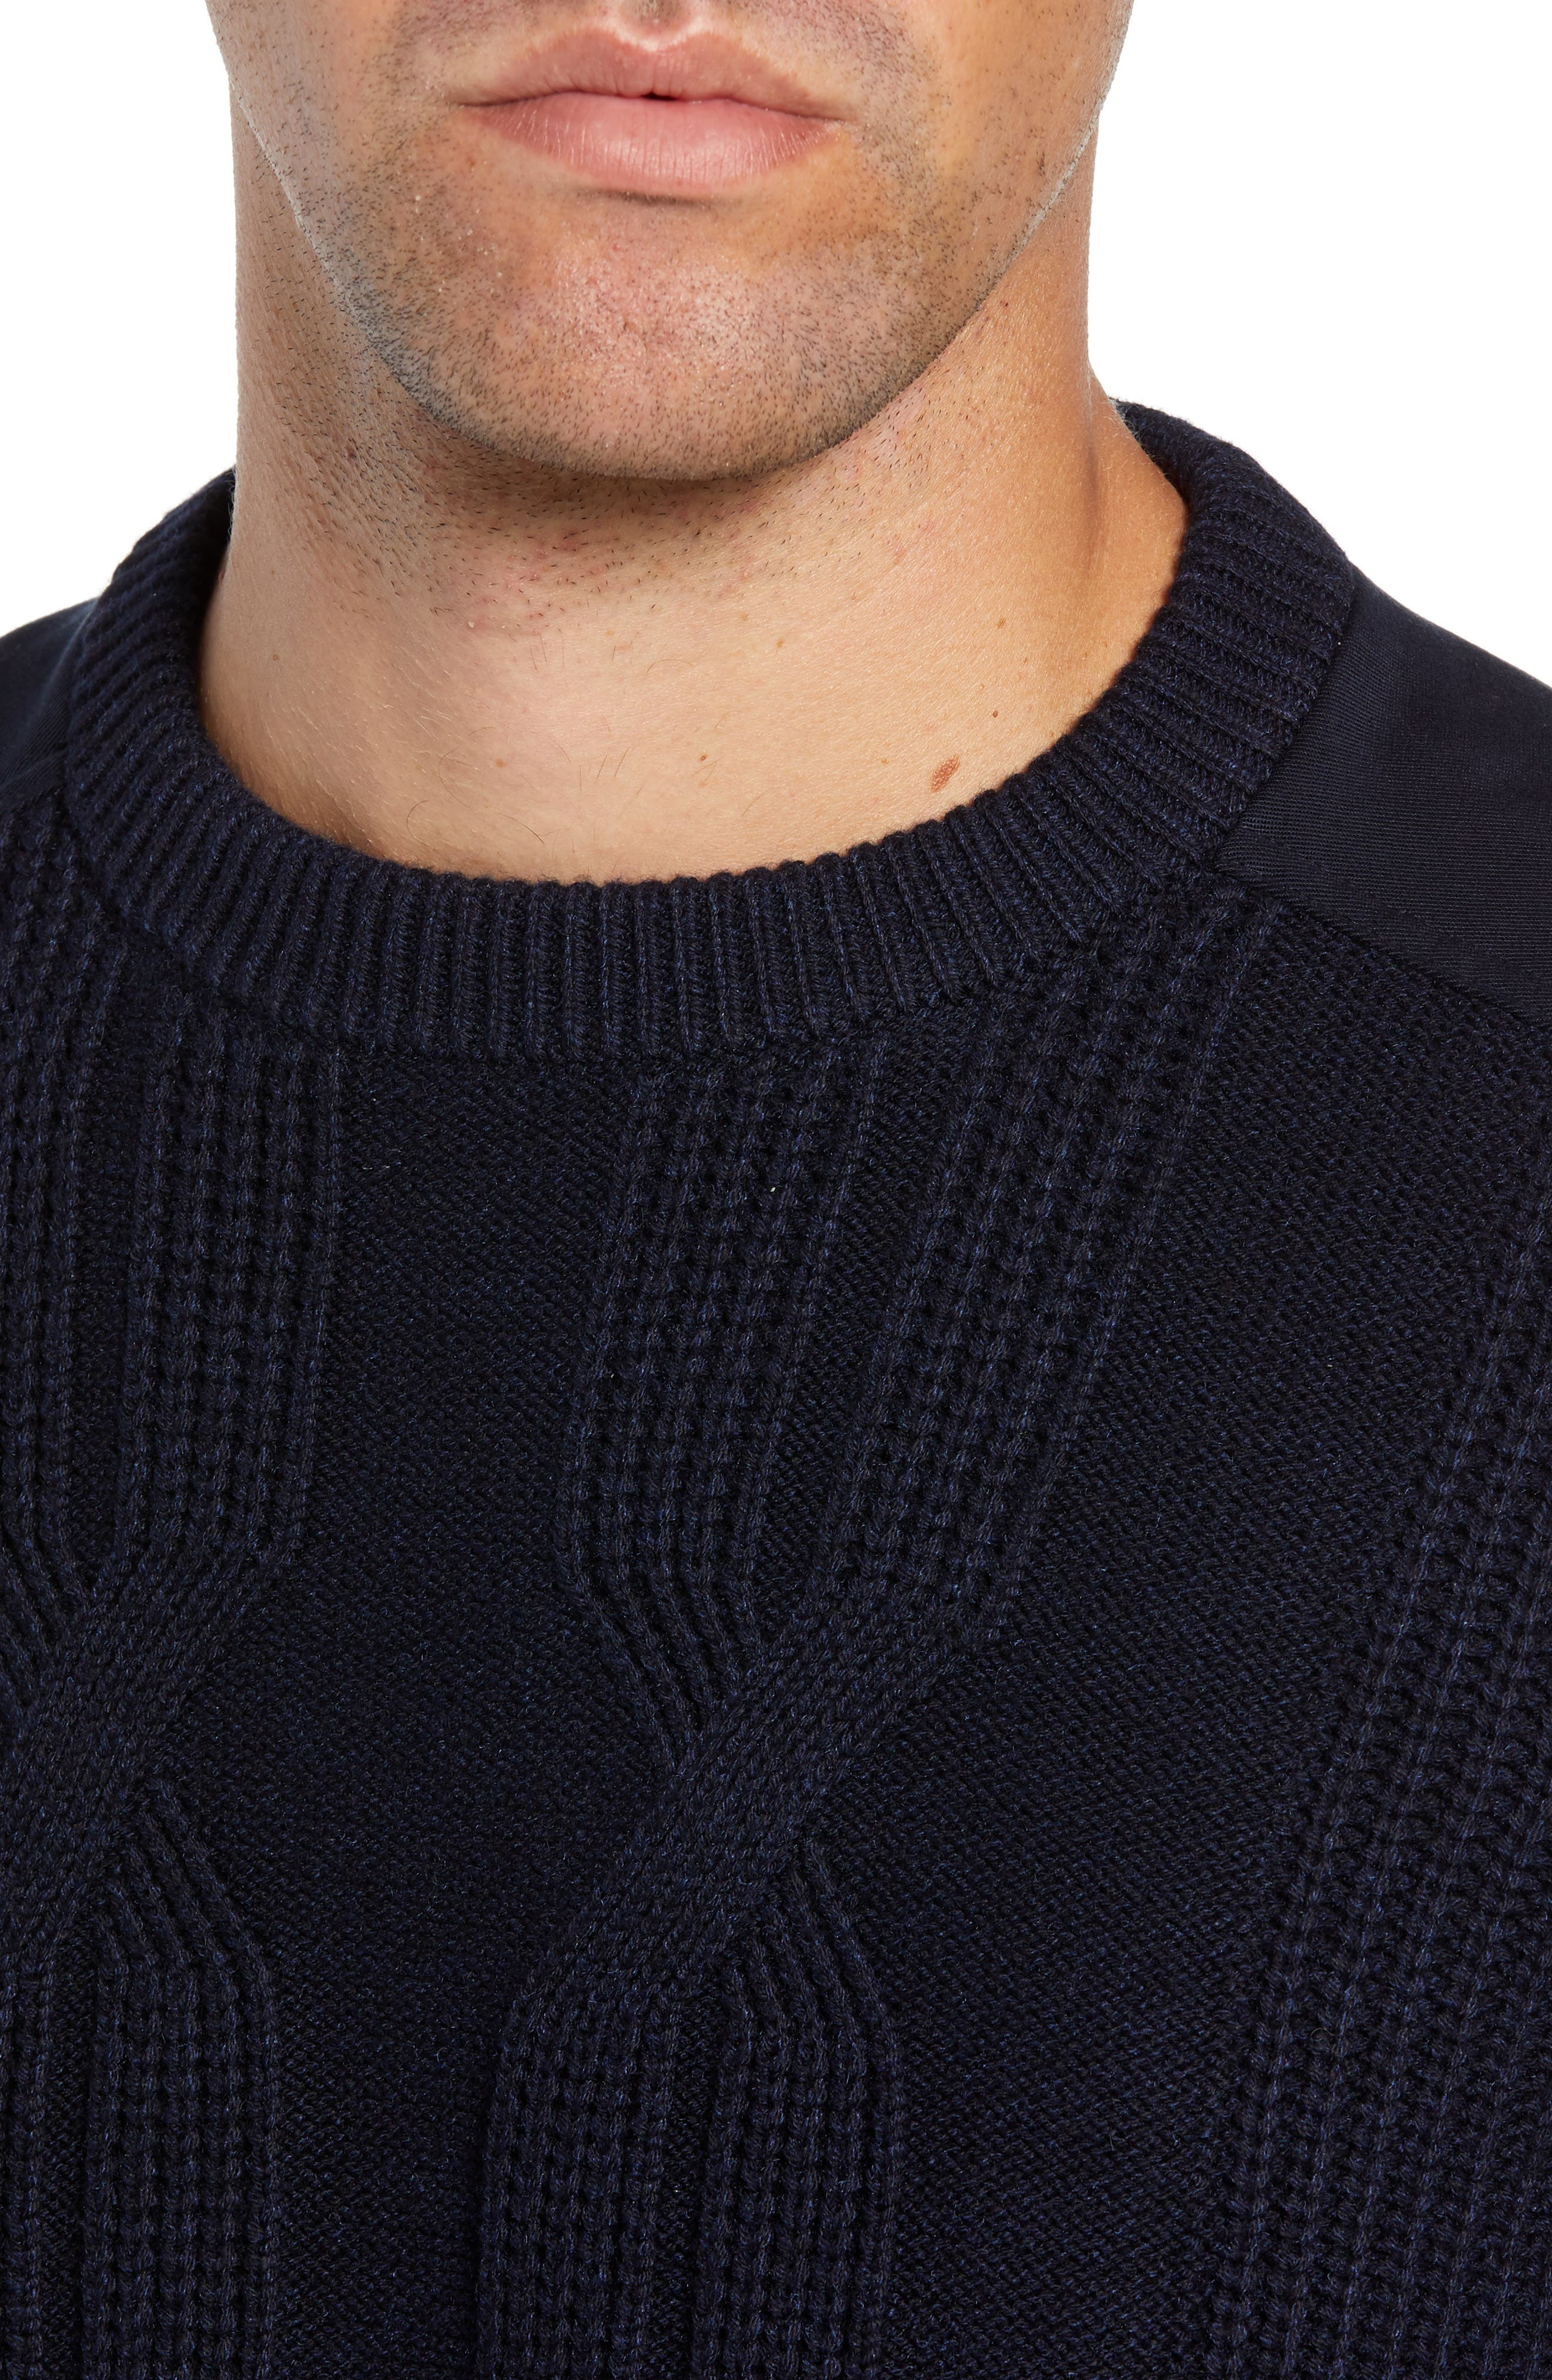 Laichi Trim Fit Cable Crewneck Sweater,                             Alternate thumbnail 4, color,                             NAVY